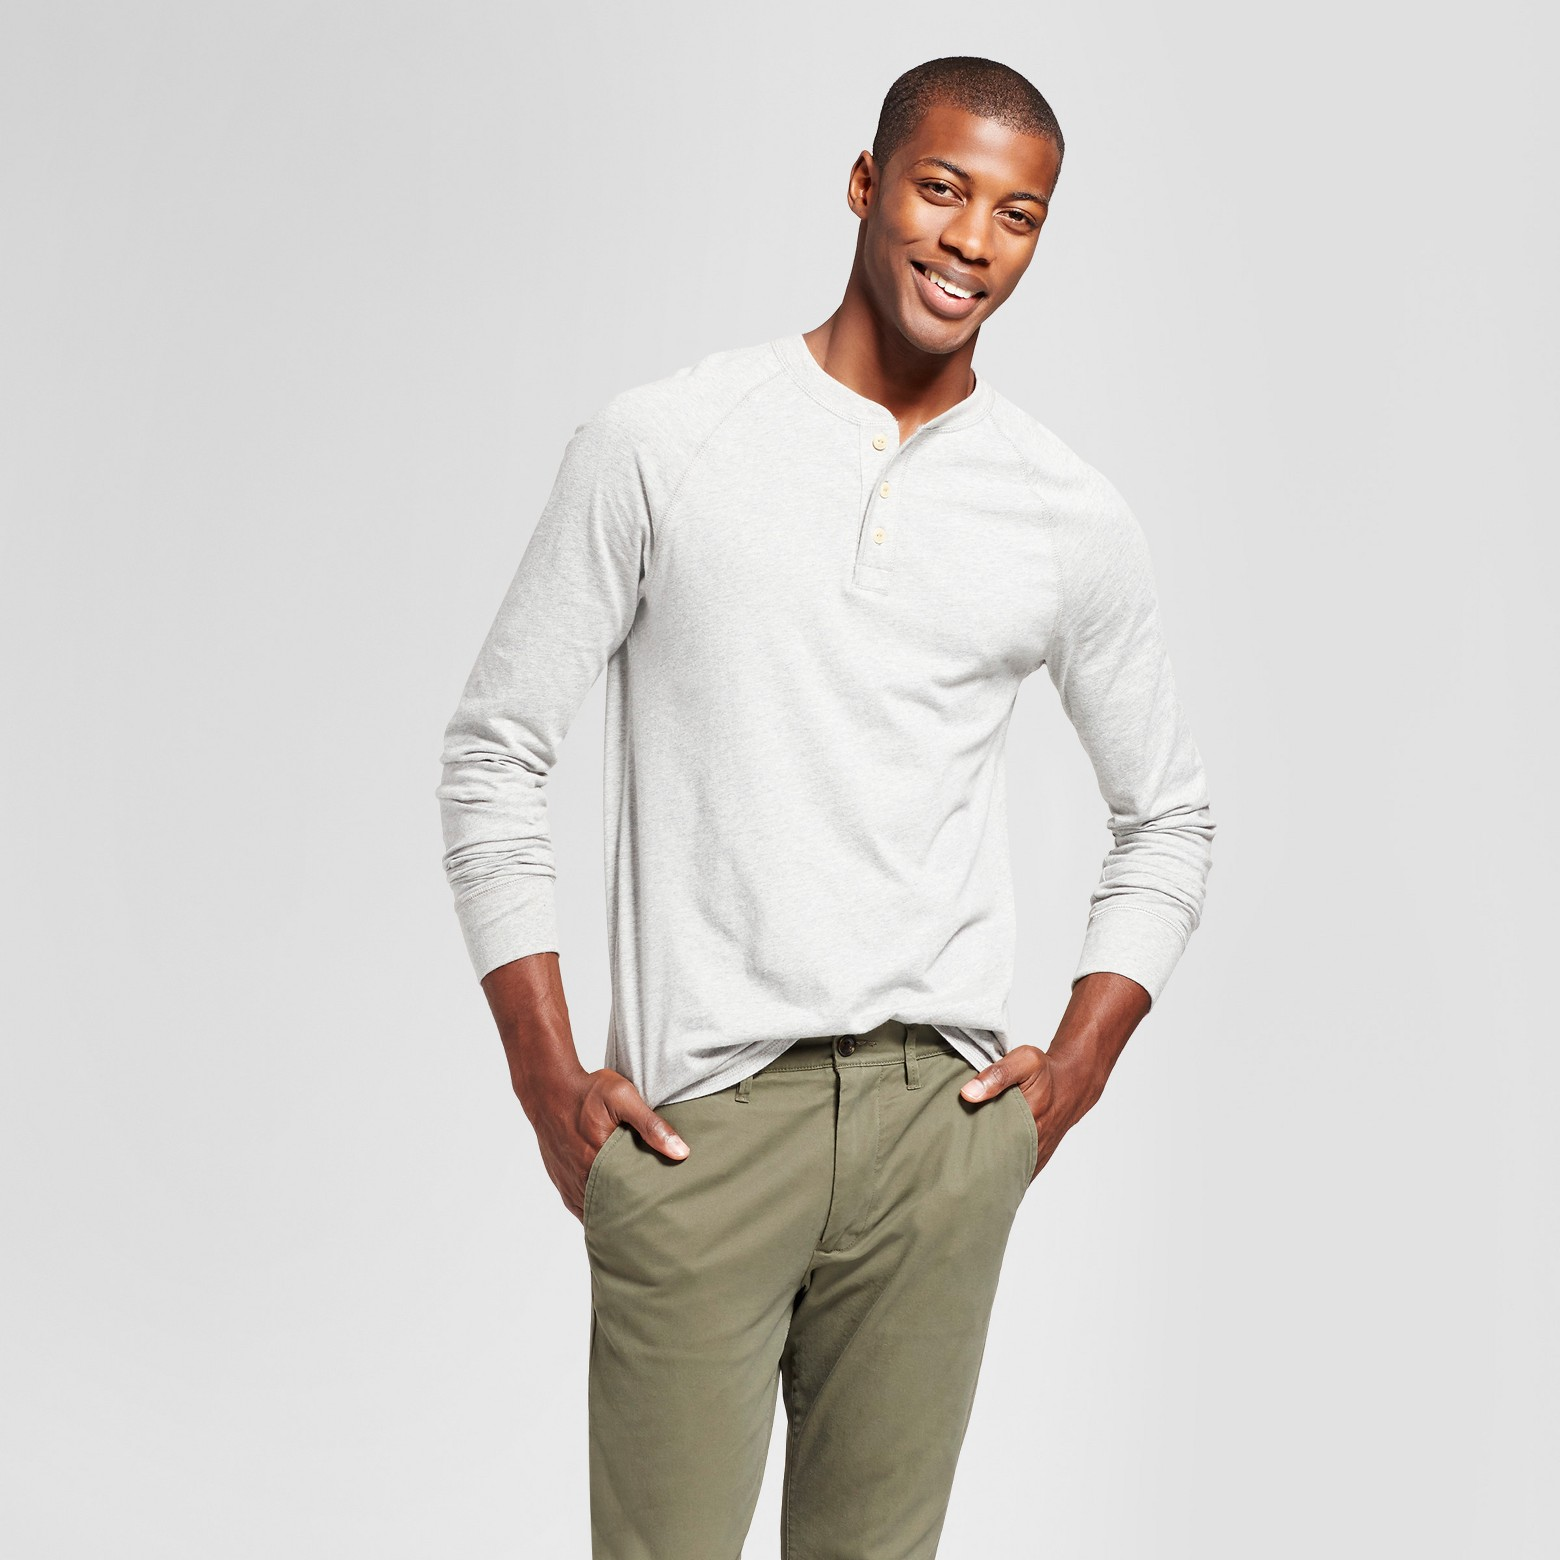 Man wearing white Henley and green pants.